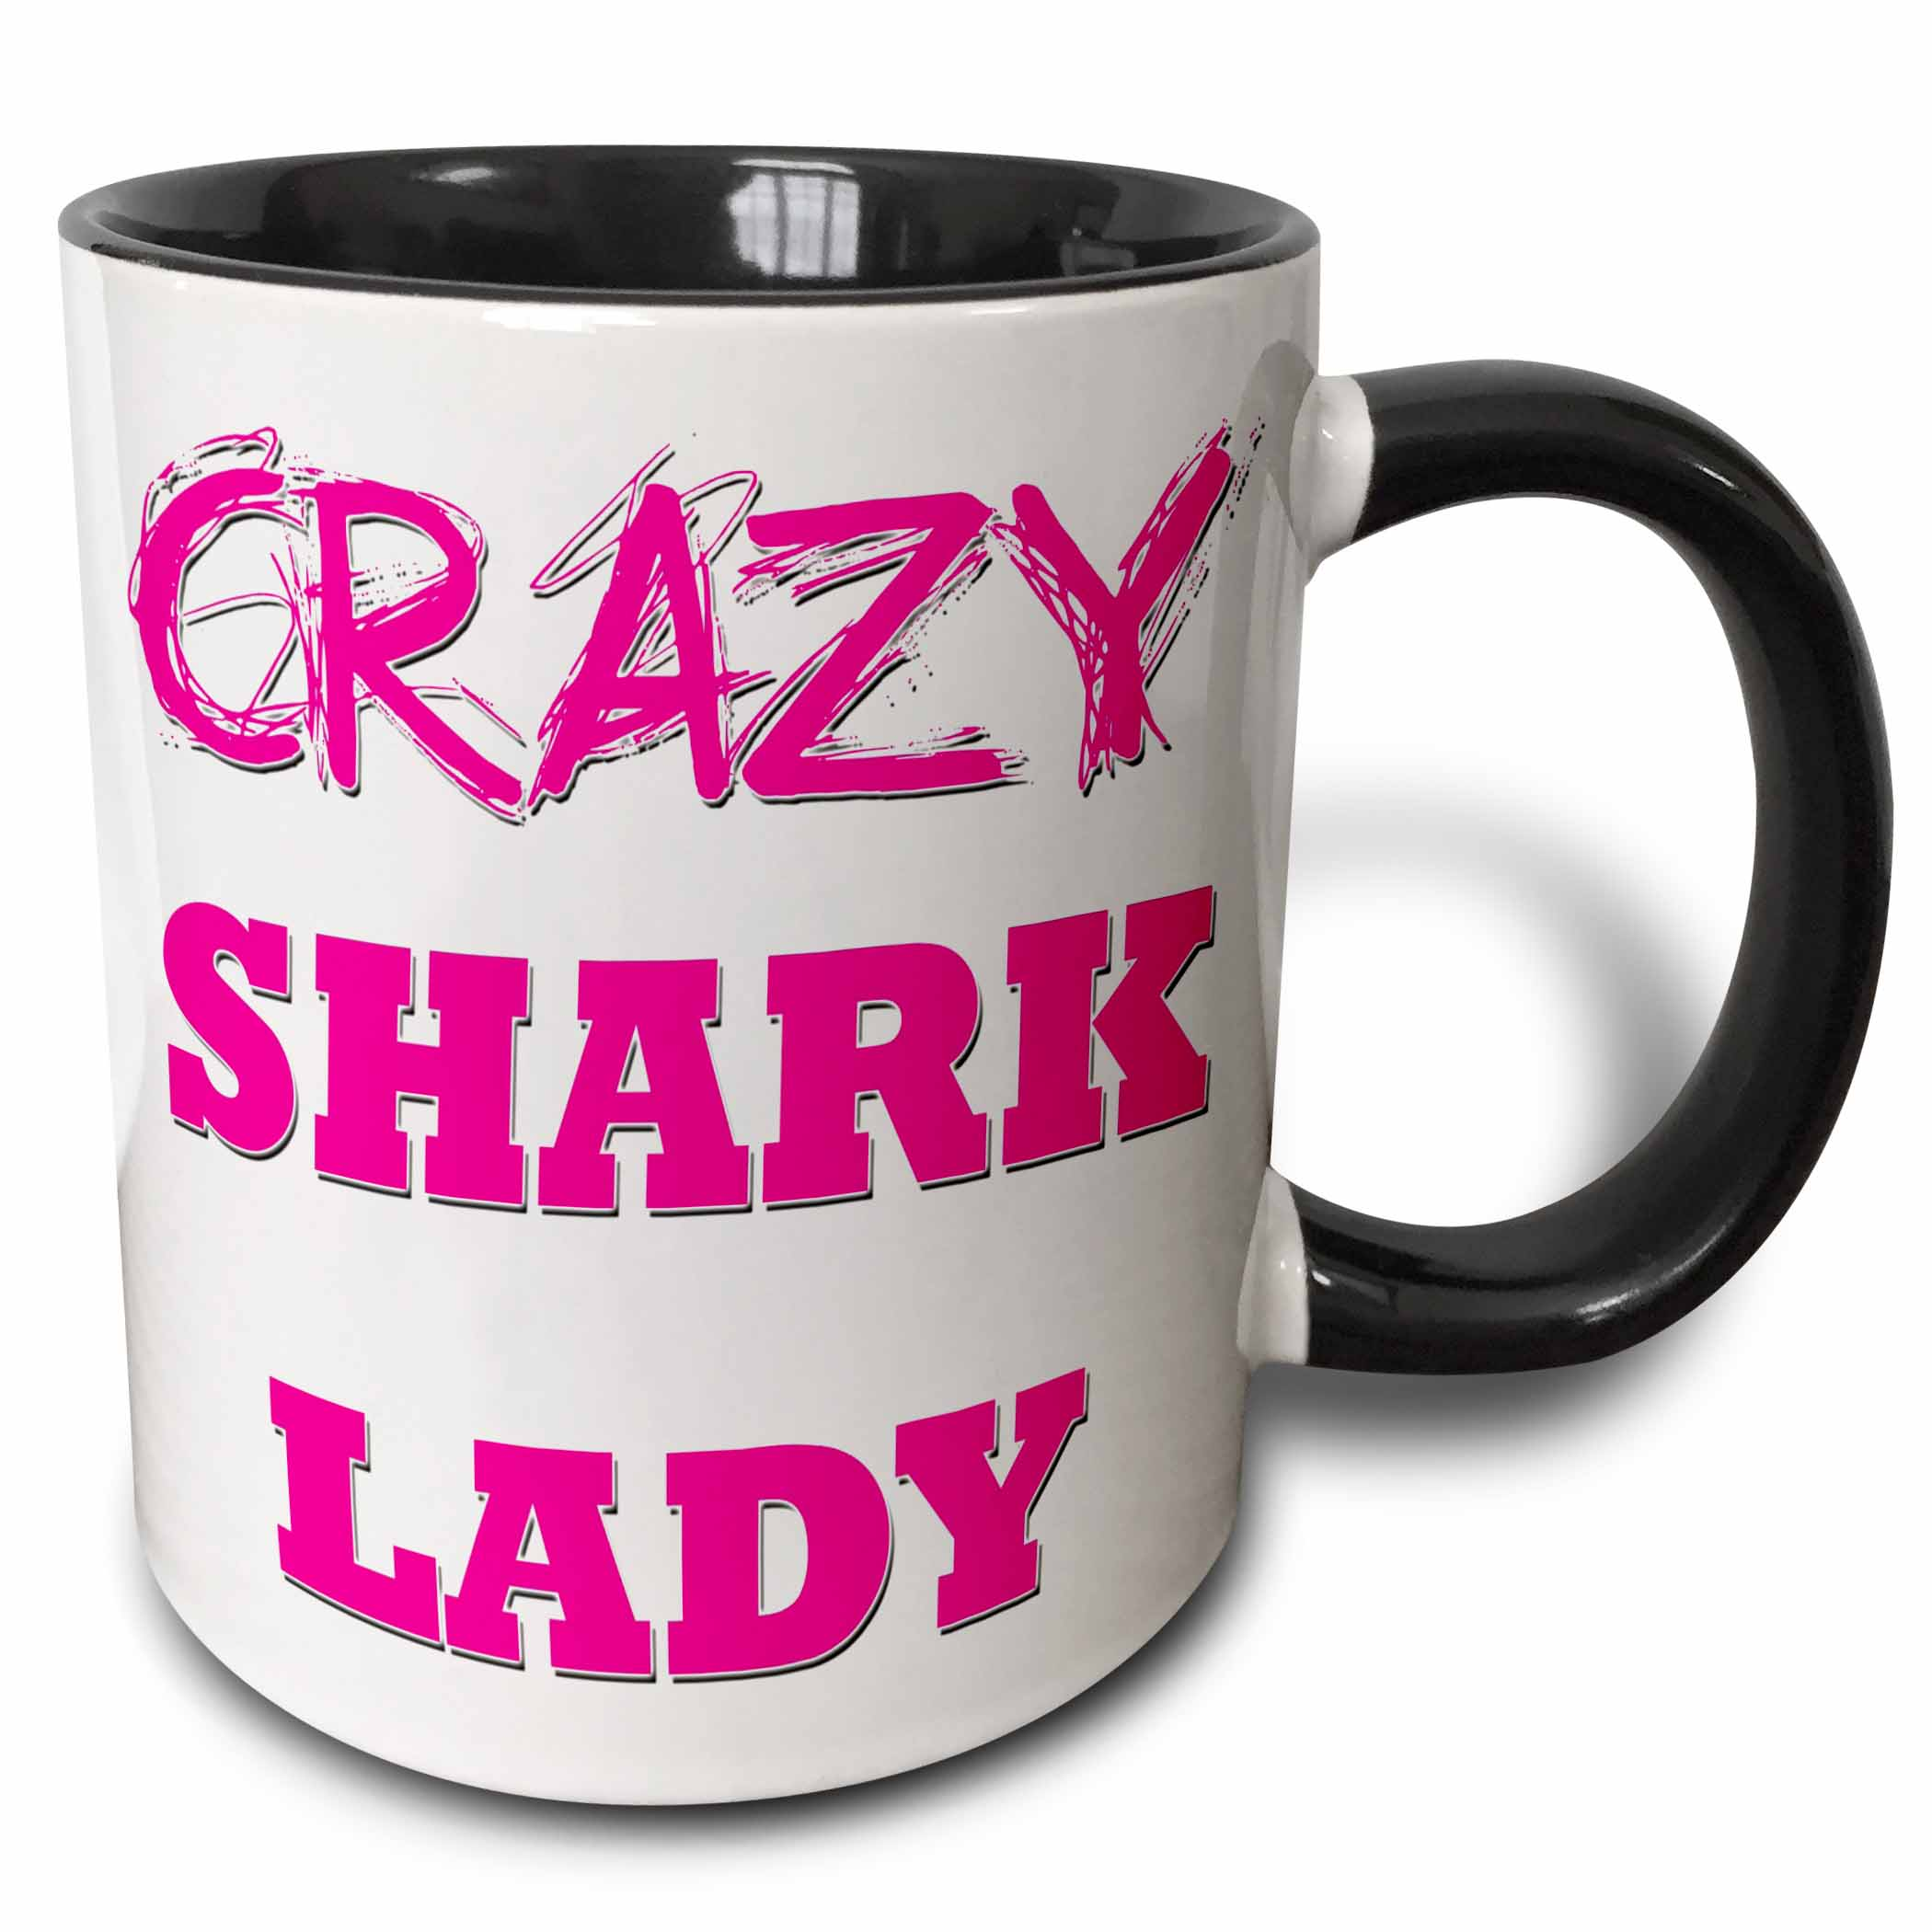 3dRose Crazy Shark Lady - Two Tone Black Mug, 11-ounce